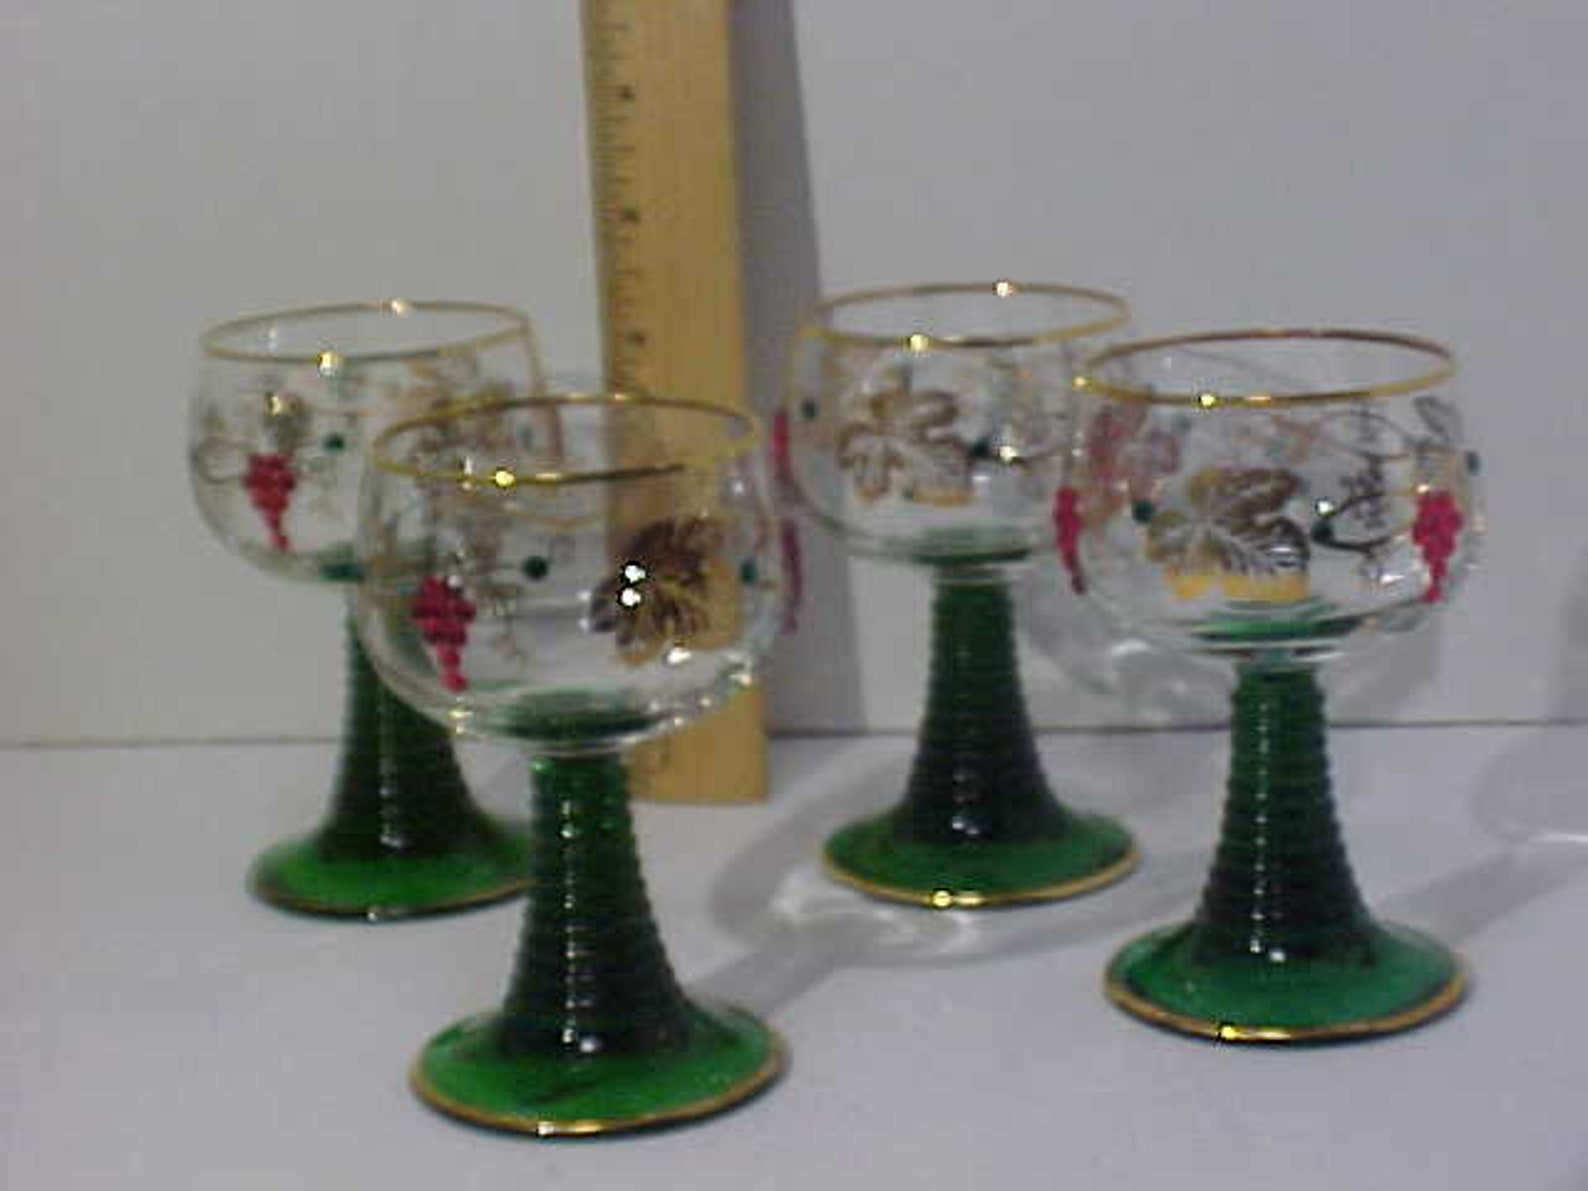 4 ROEMER Rhine Wine Glasses Grapes,& Leaves WITH Swarovski Crystals